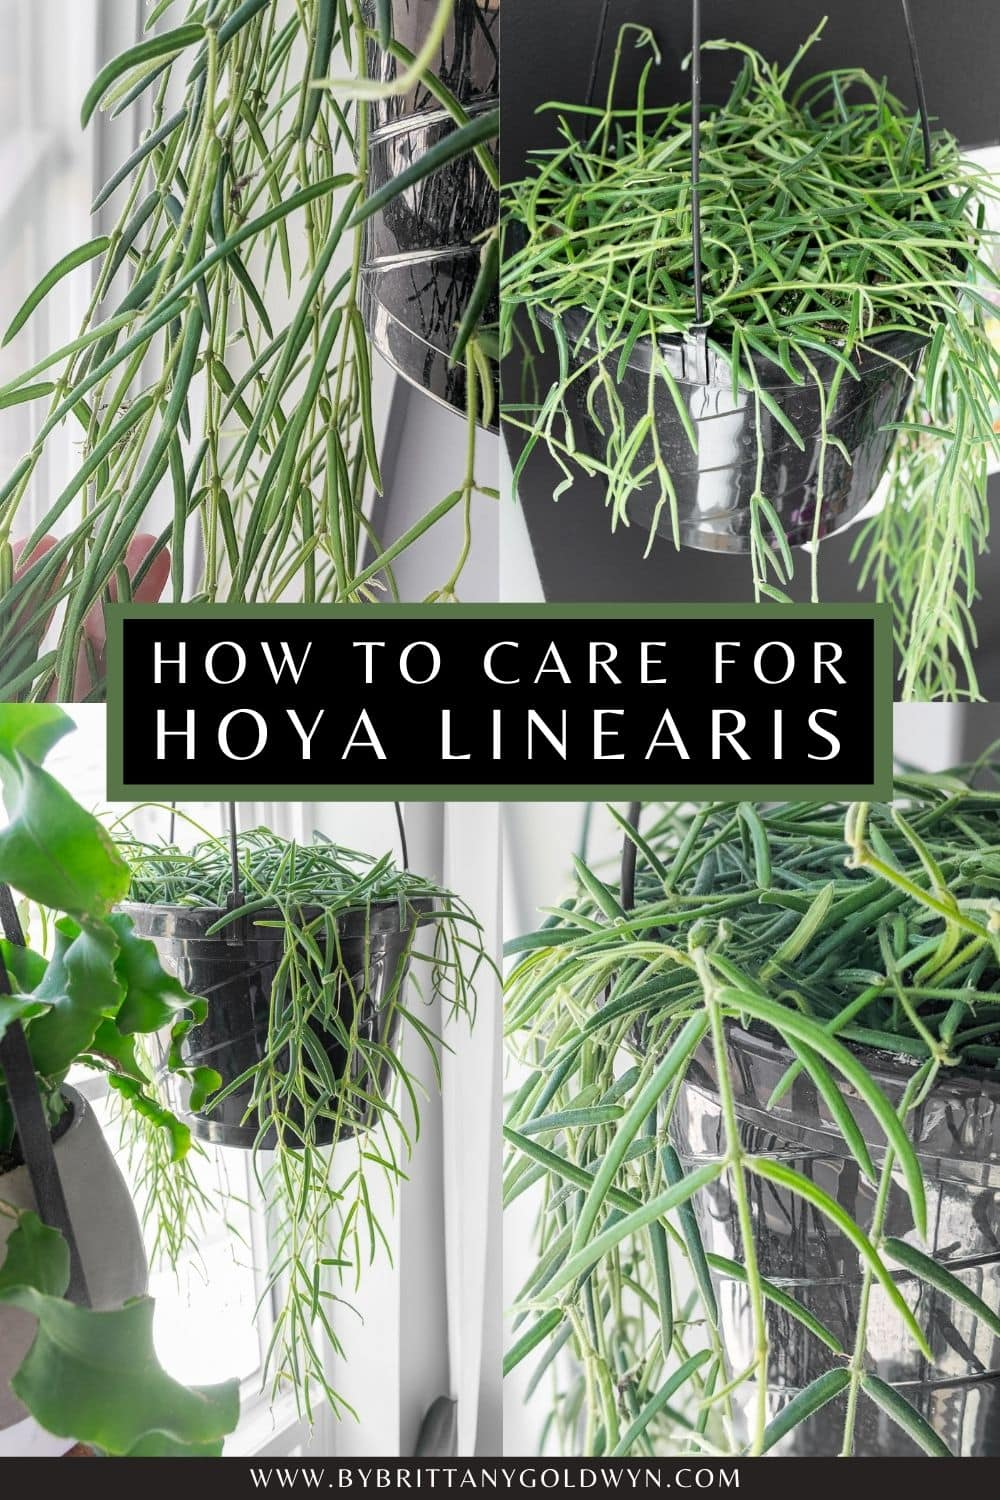 hoya linearis care pinnable image with text overlay